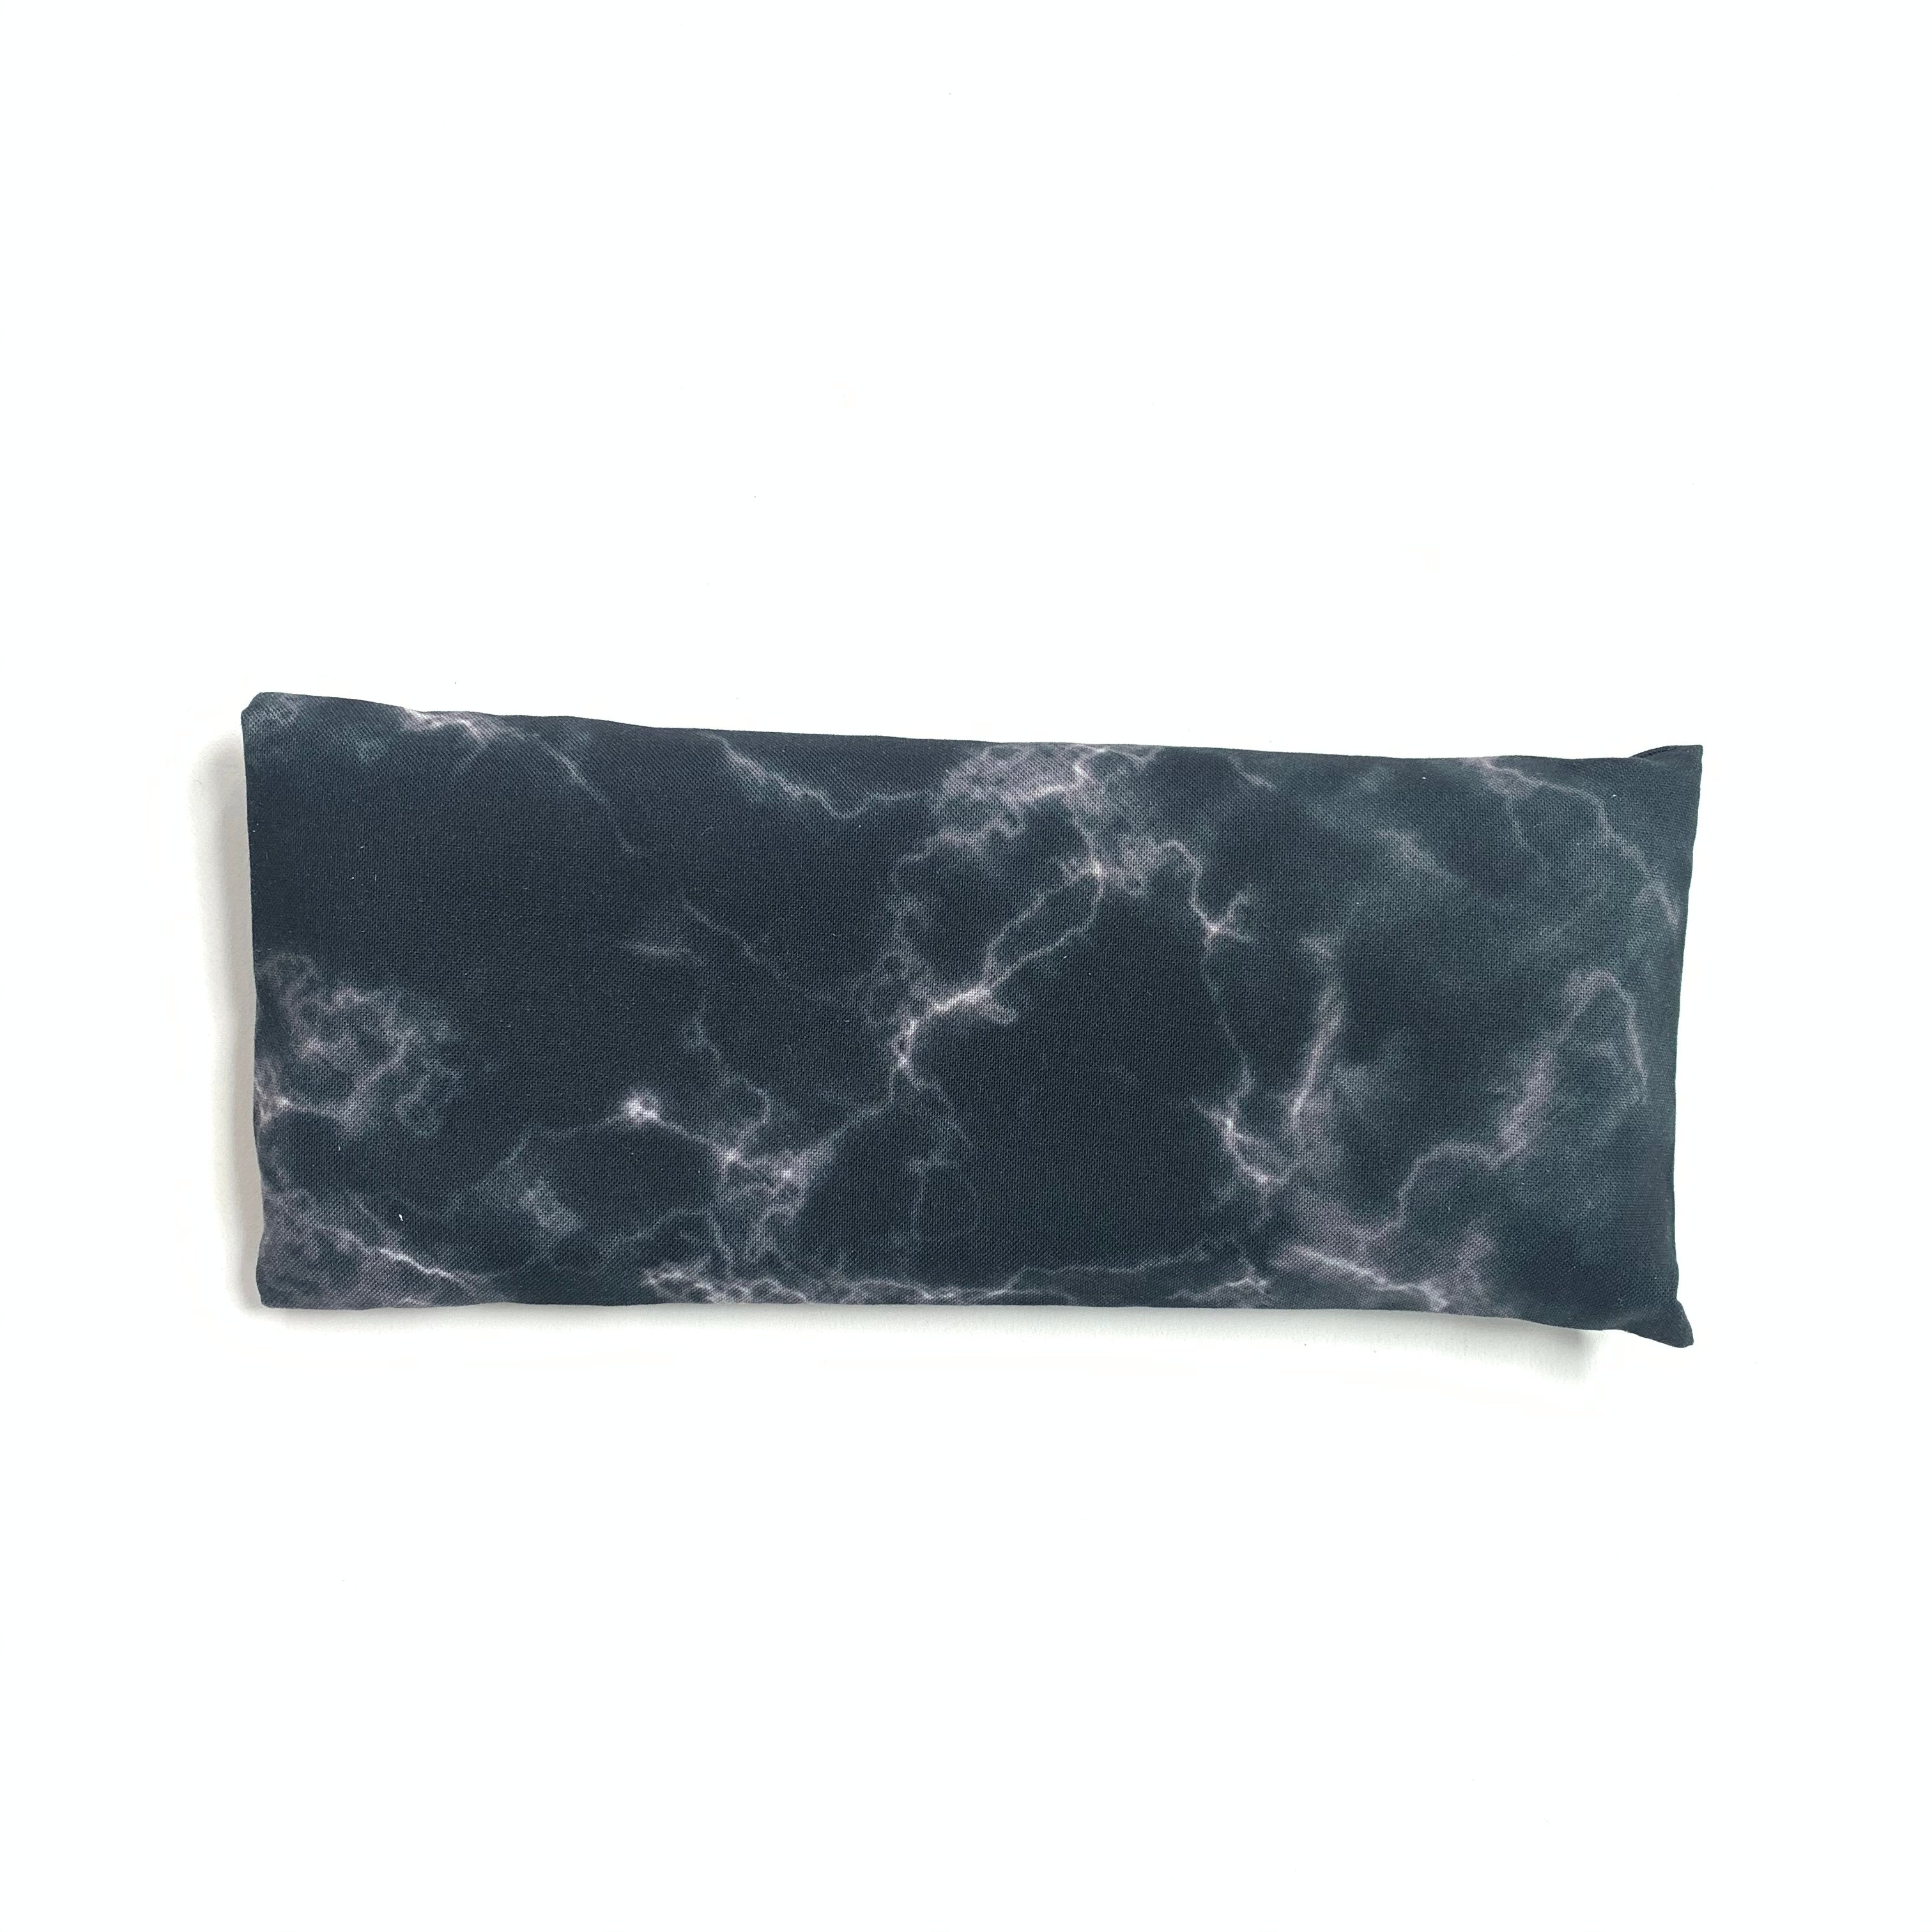 Lavender eye pillow with black and white hand dyed marble design, made in Toronto, Ontario, Canada.